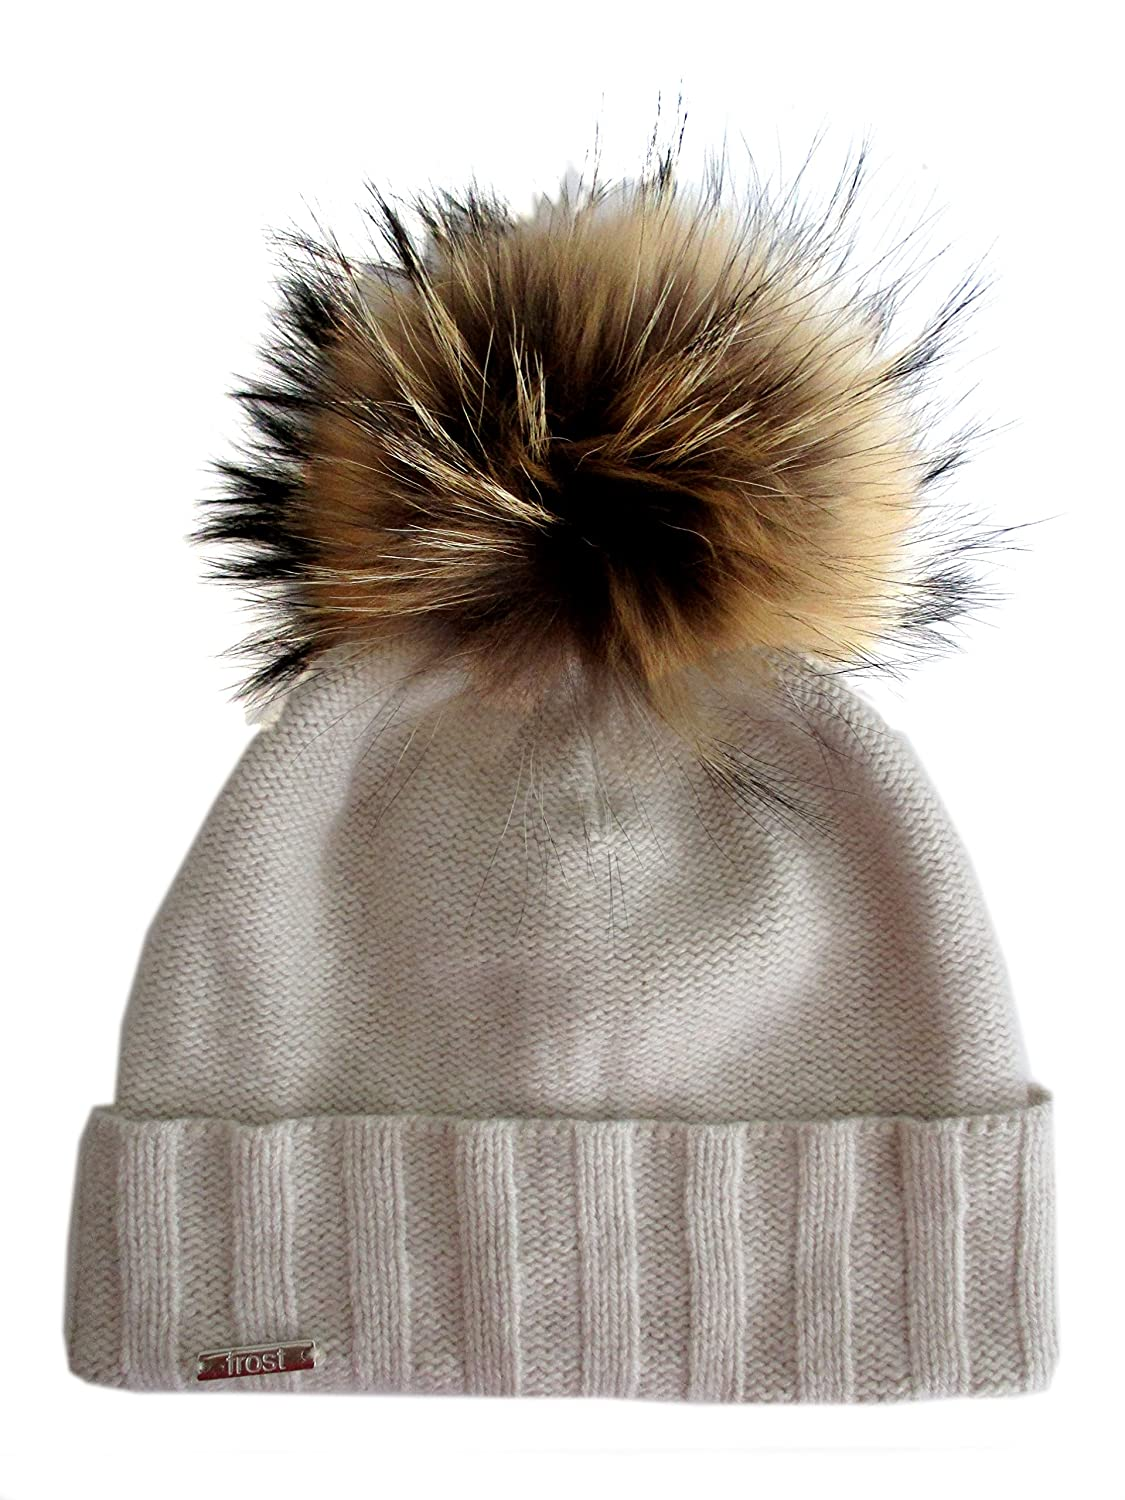 9b017c98753 Frost Hats Chic and Classy Cashmere Beanie Hat for Women with Detachable  Genuine Fox Fur Pom CSH-804RN